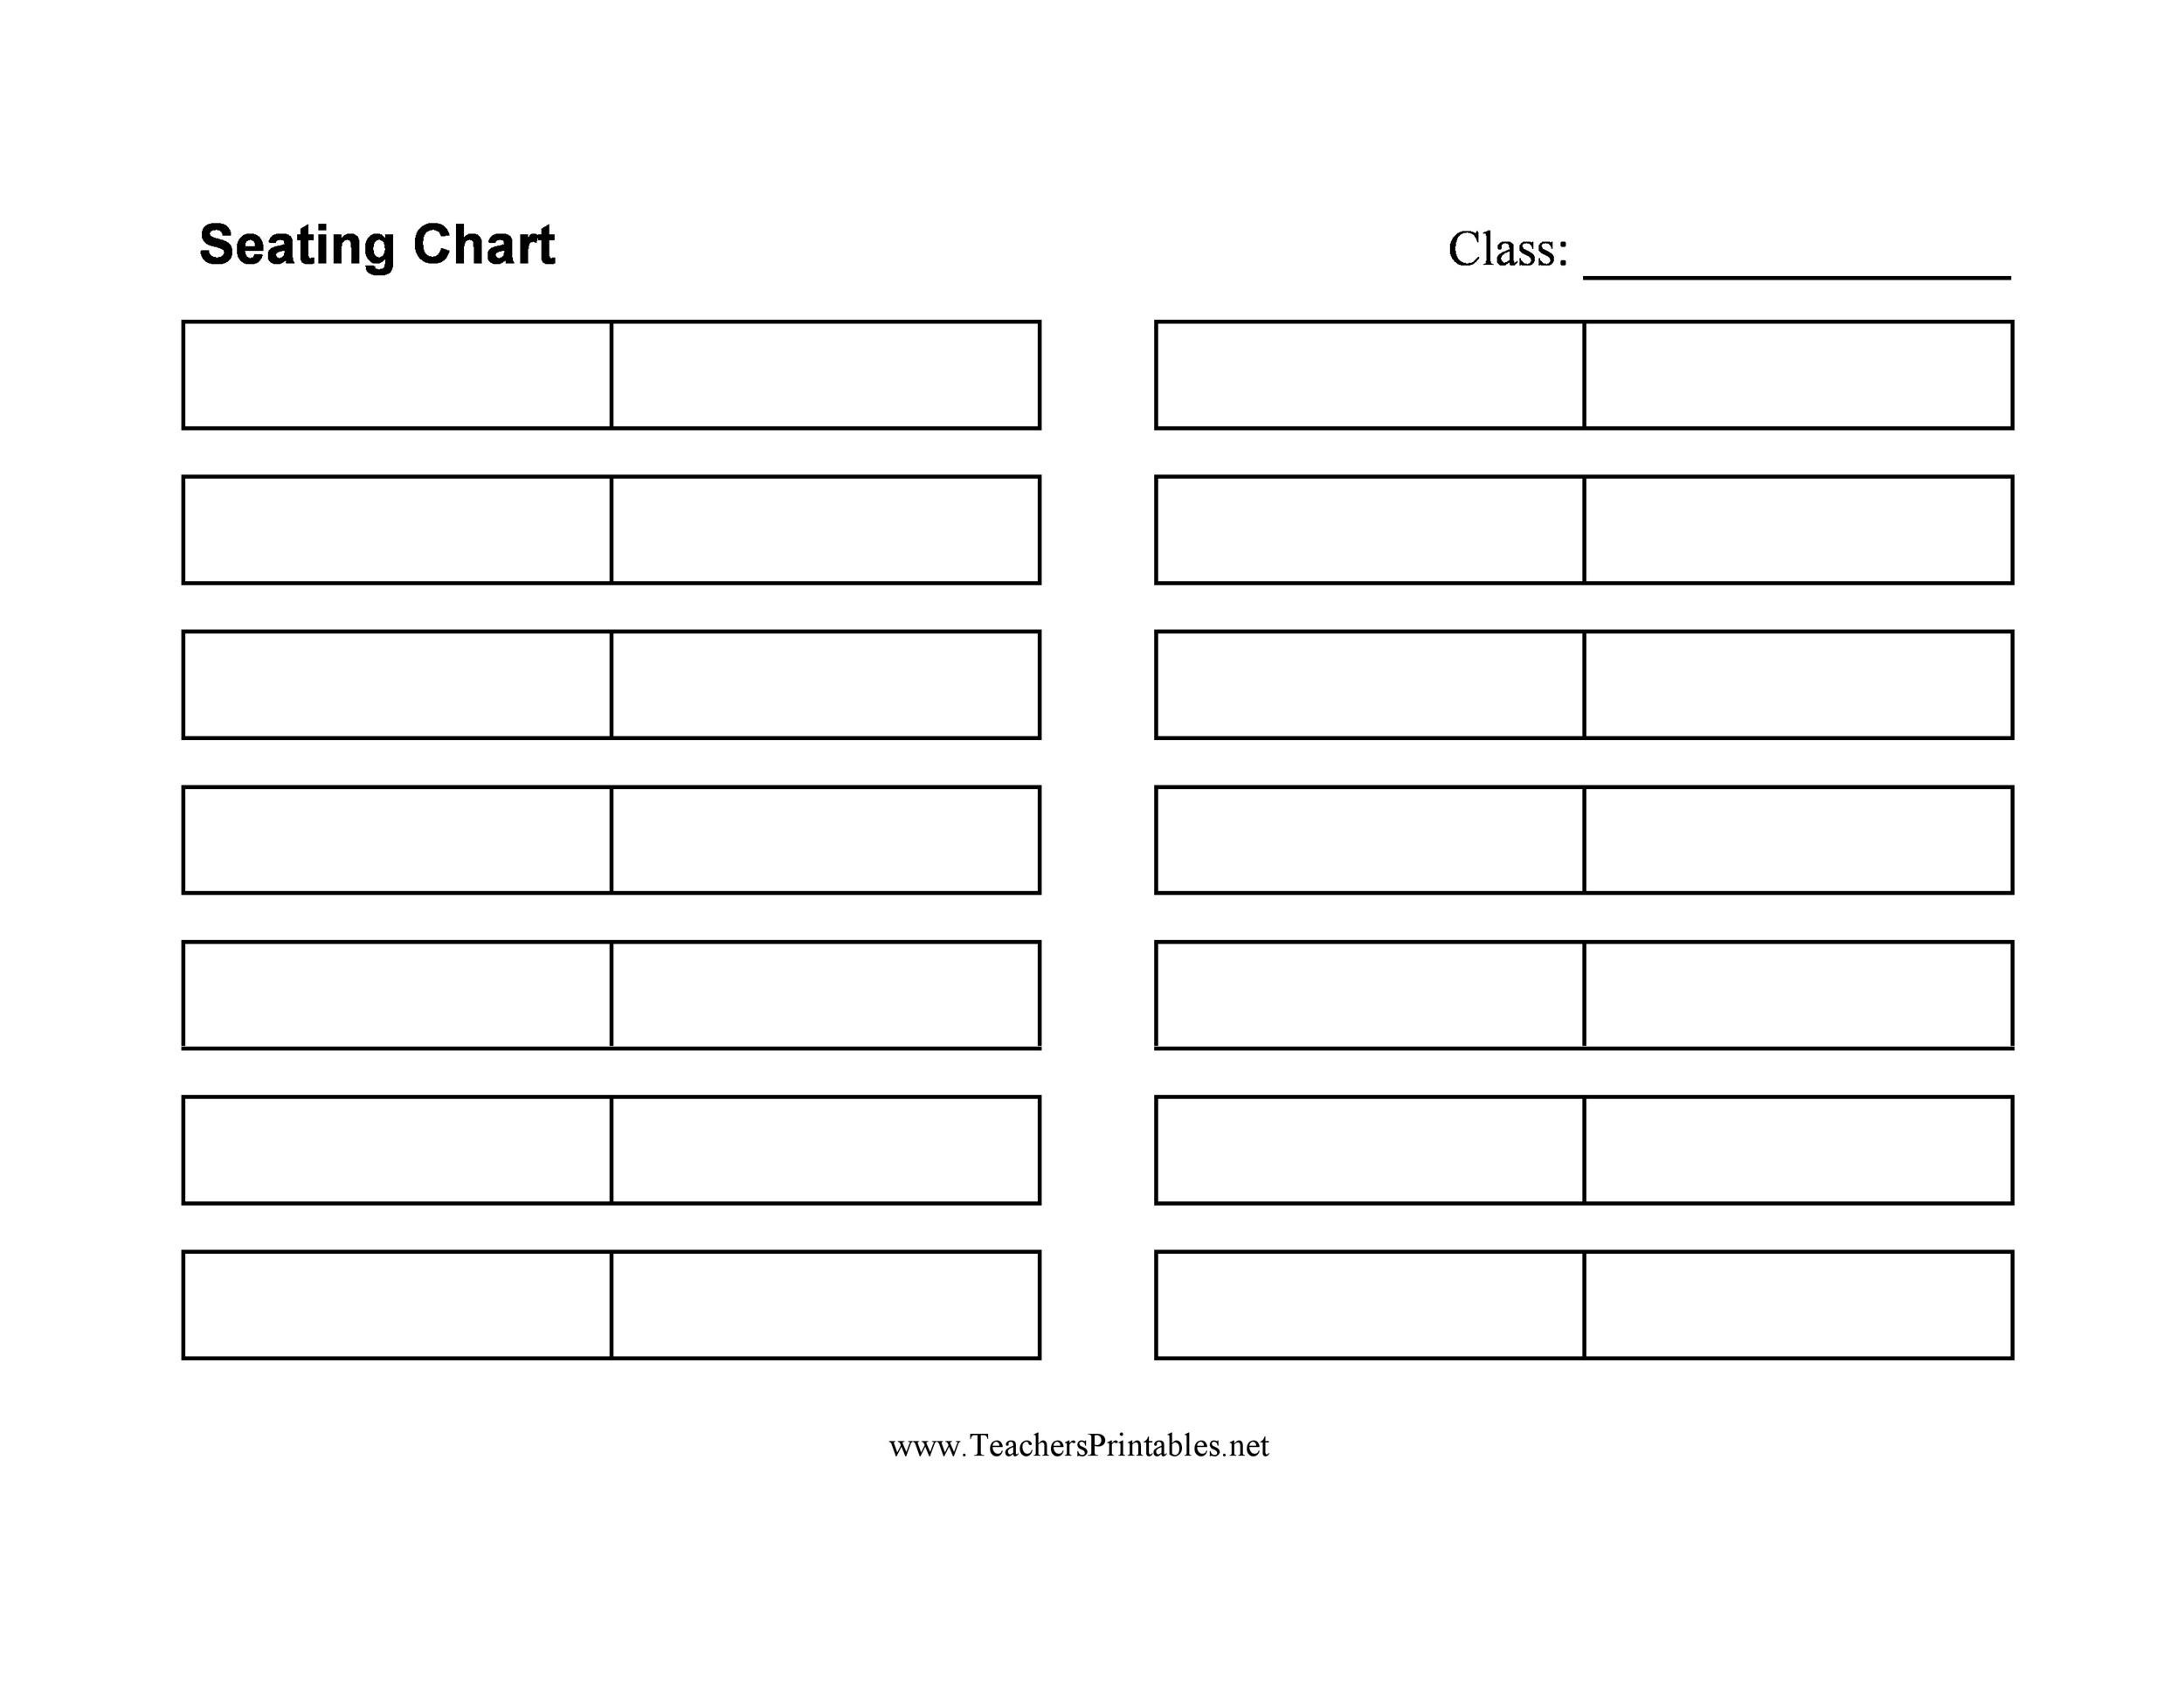 40+ Great Seating Chart Templates (Wedding, Classroom + more)